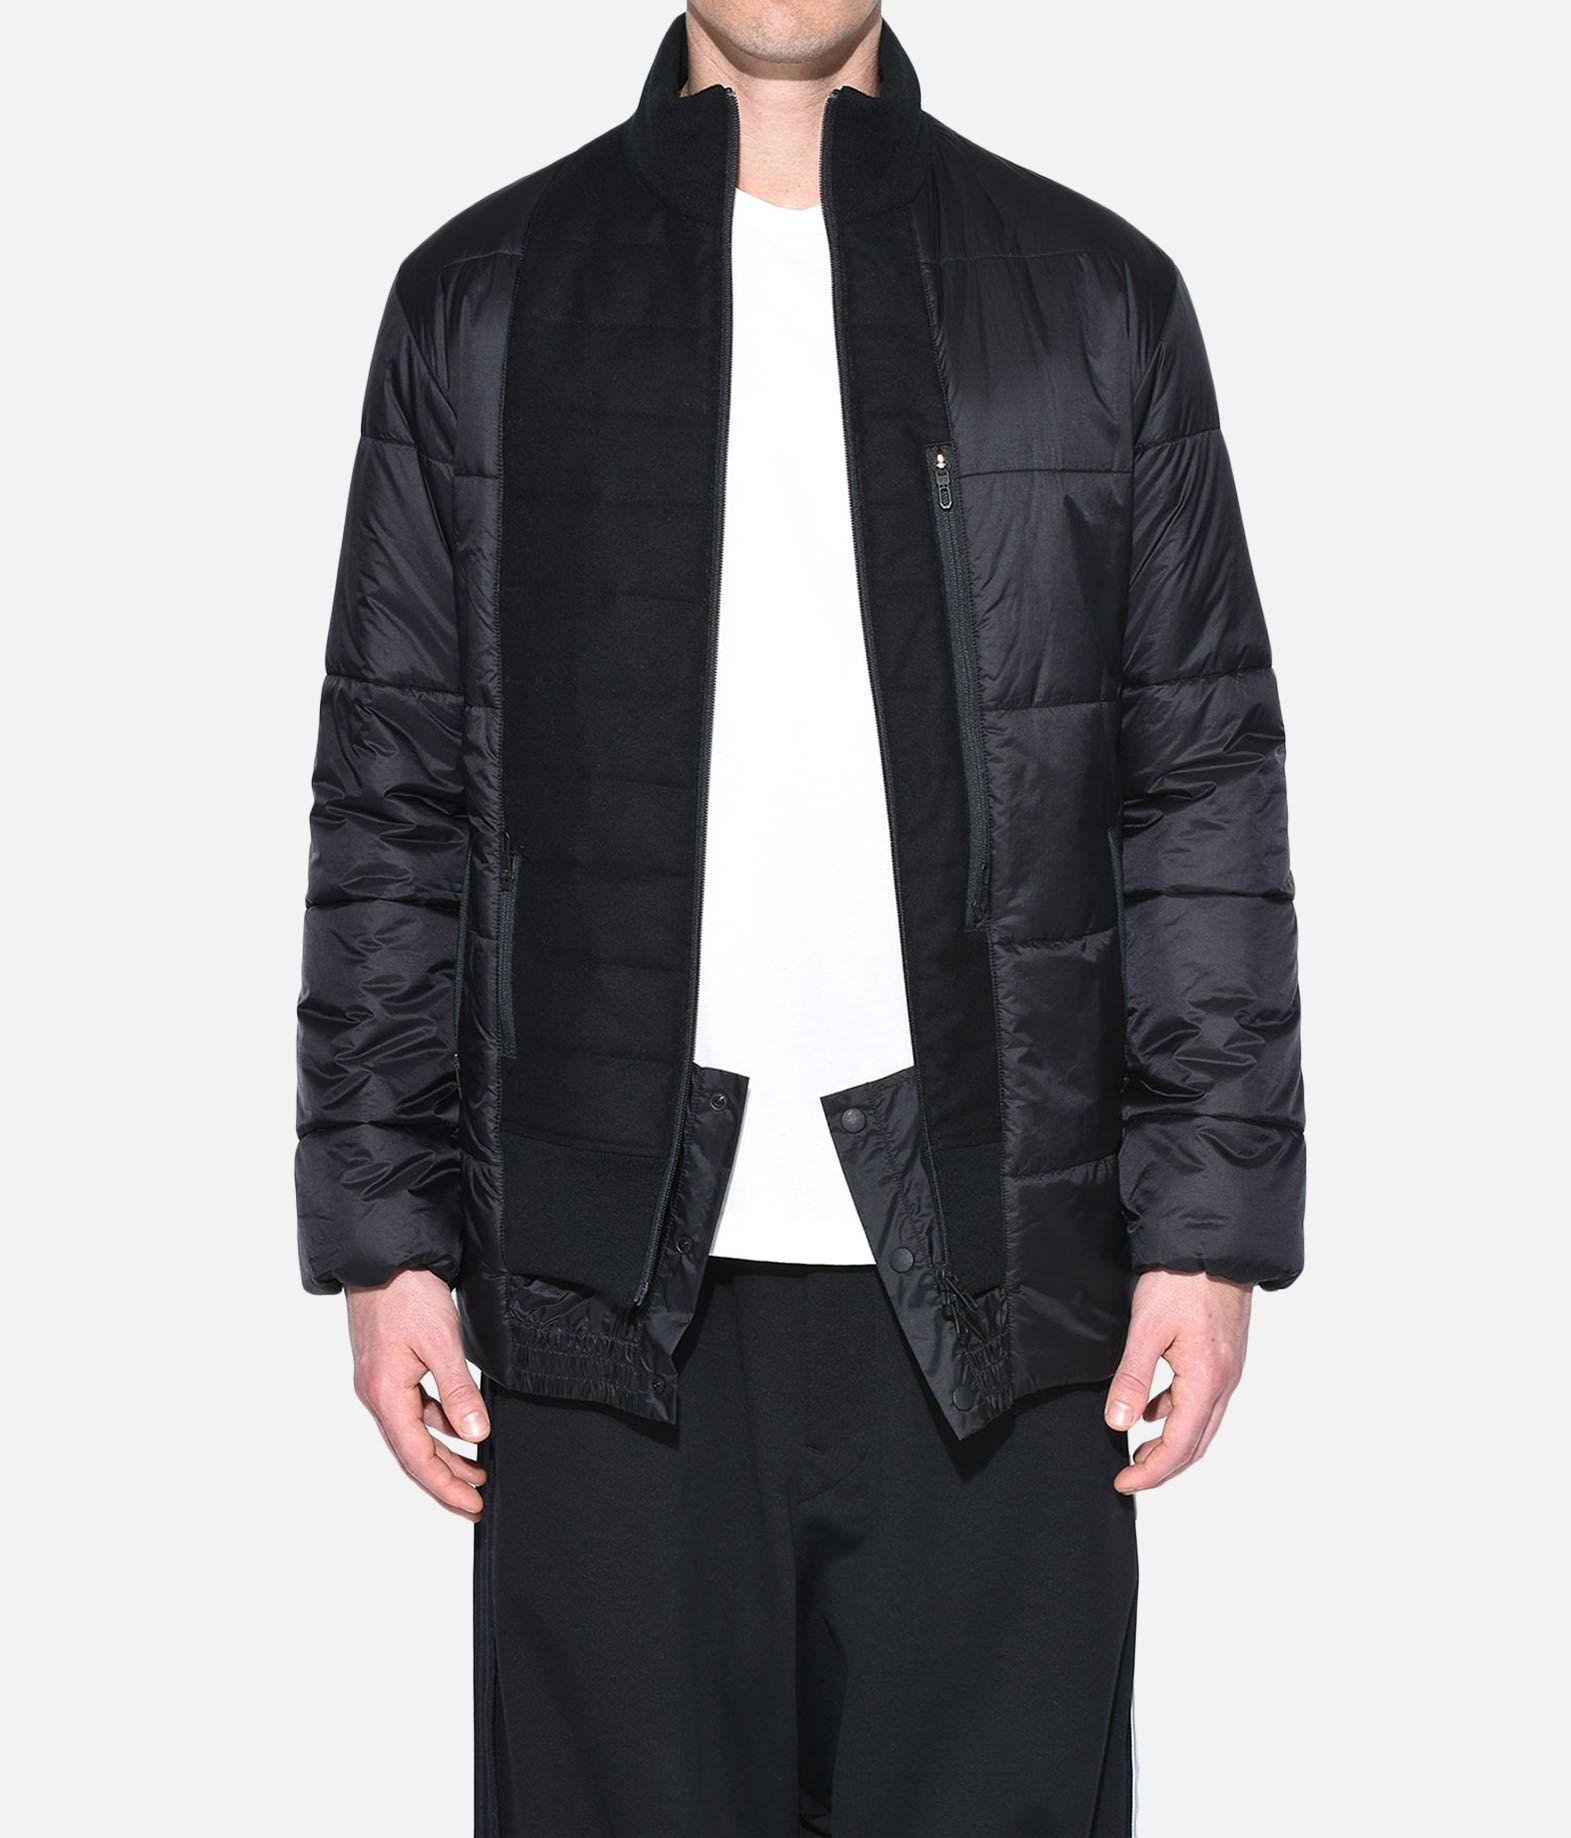 Y-3 Y-3 Patchwork Down Jacket Down jacket Man r